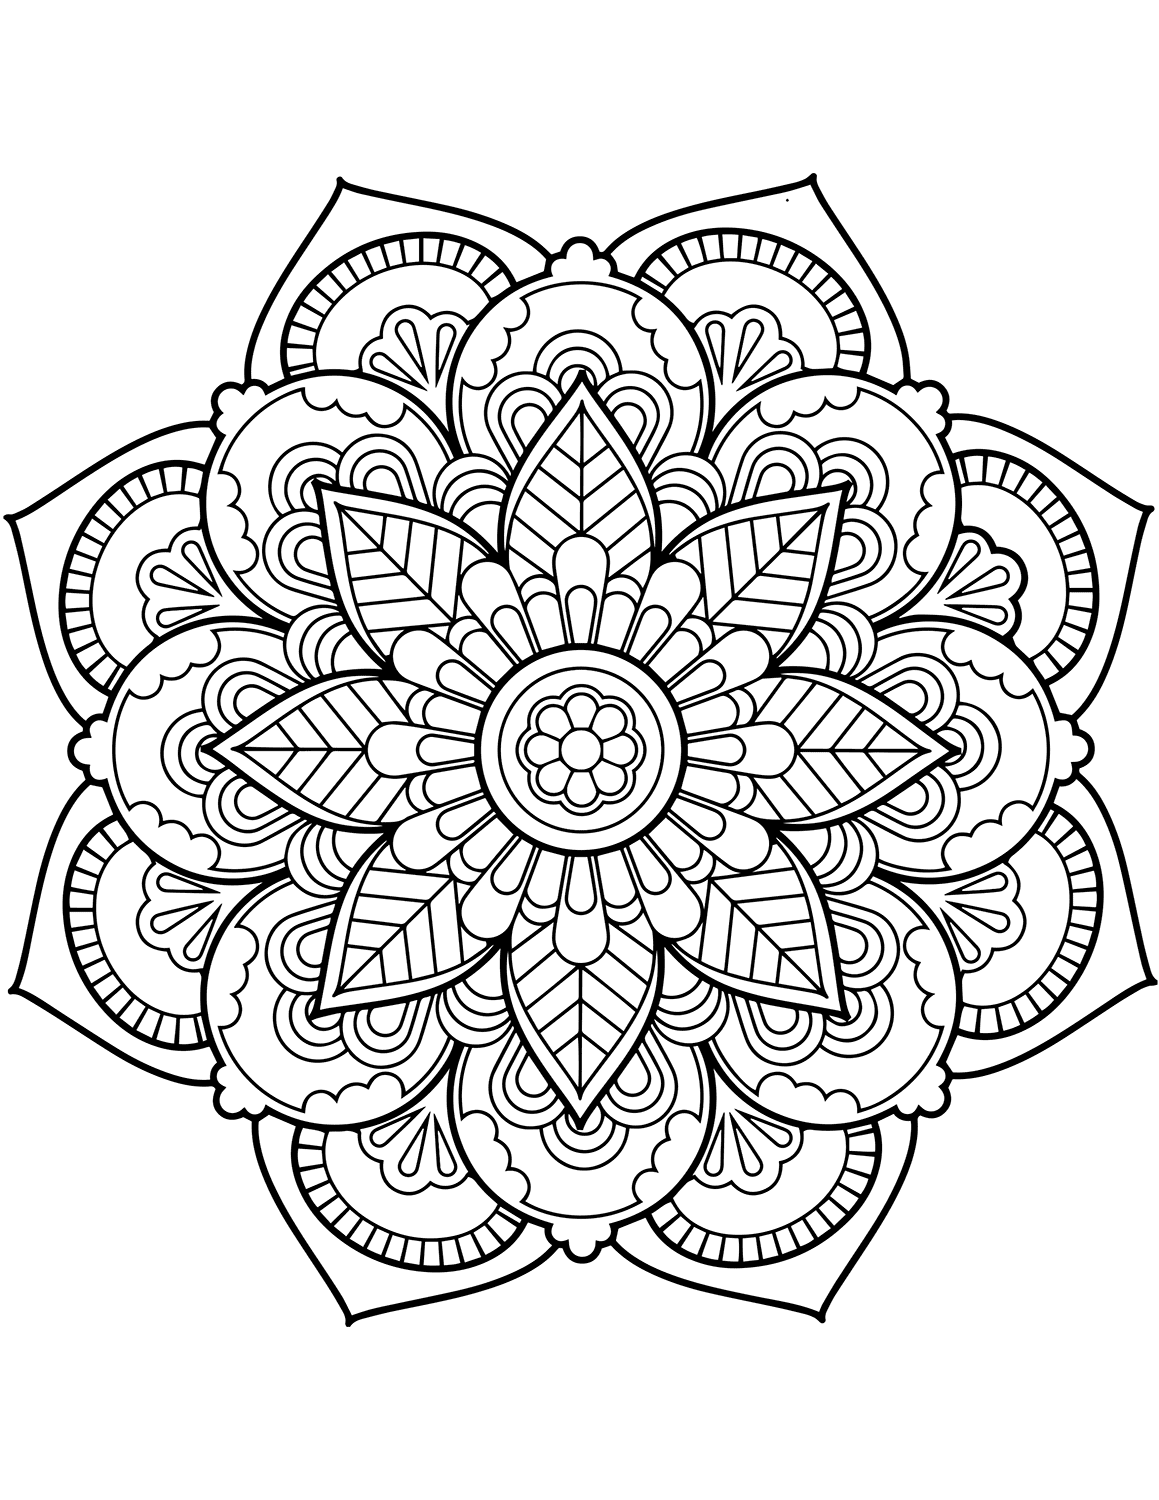 mandala free printable don39t eat the paste mandalas coloring pages mandala free printable